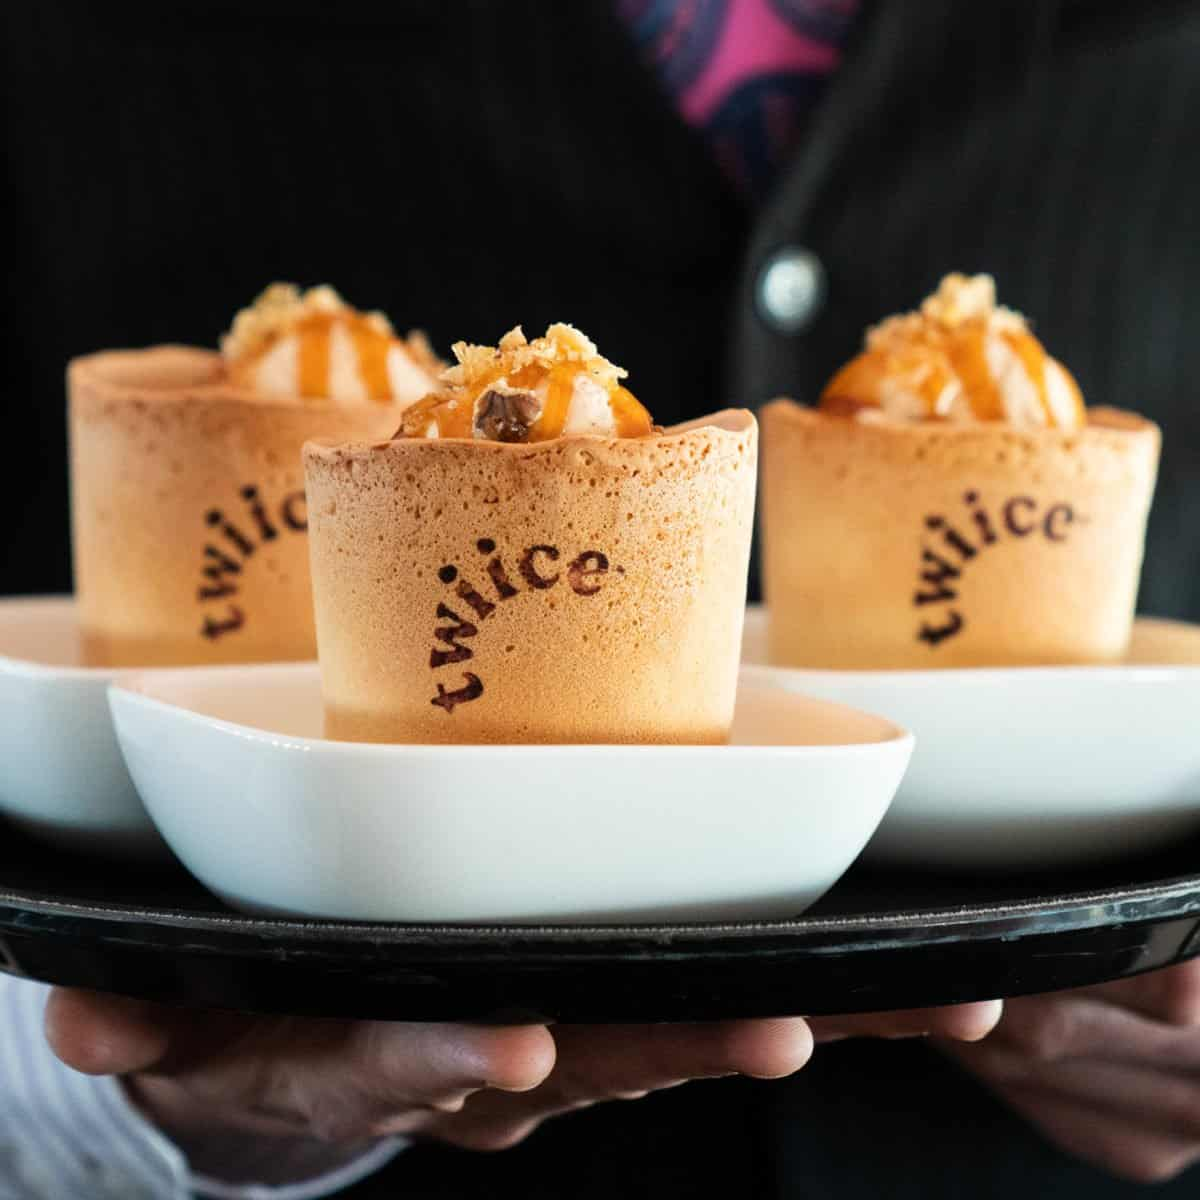 Edible coffee cups are the new thing to reduce waste